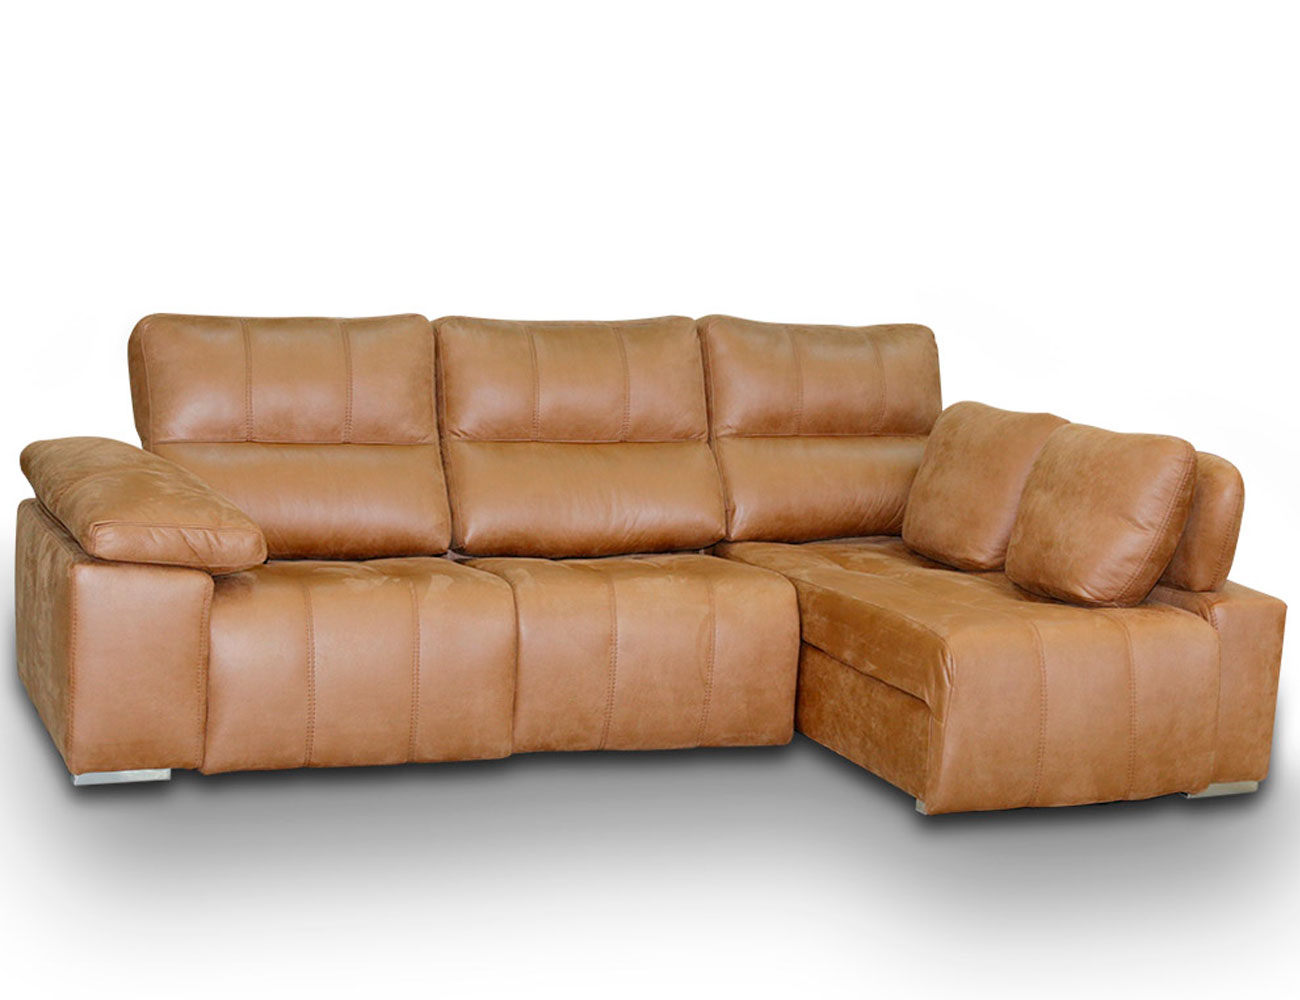 Sofa chaiselongue relax 2 motores anti manchas44